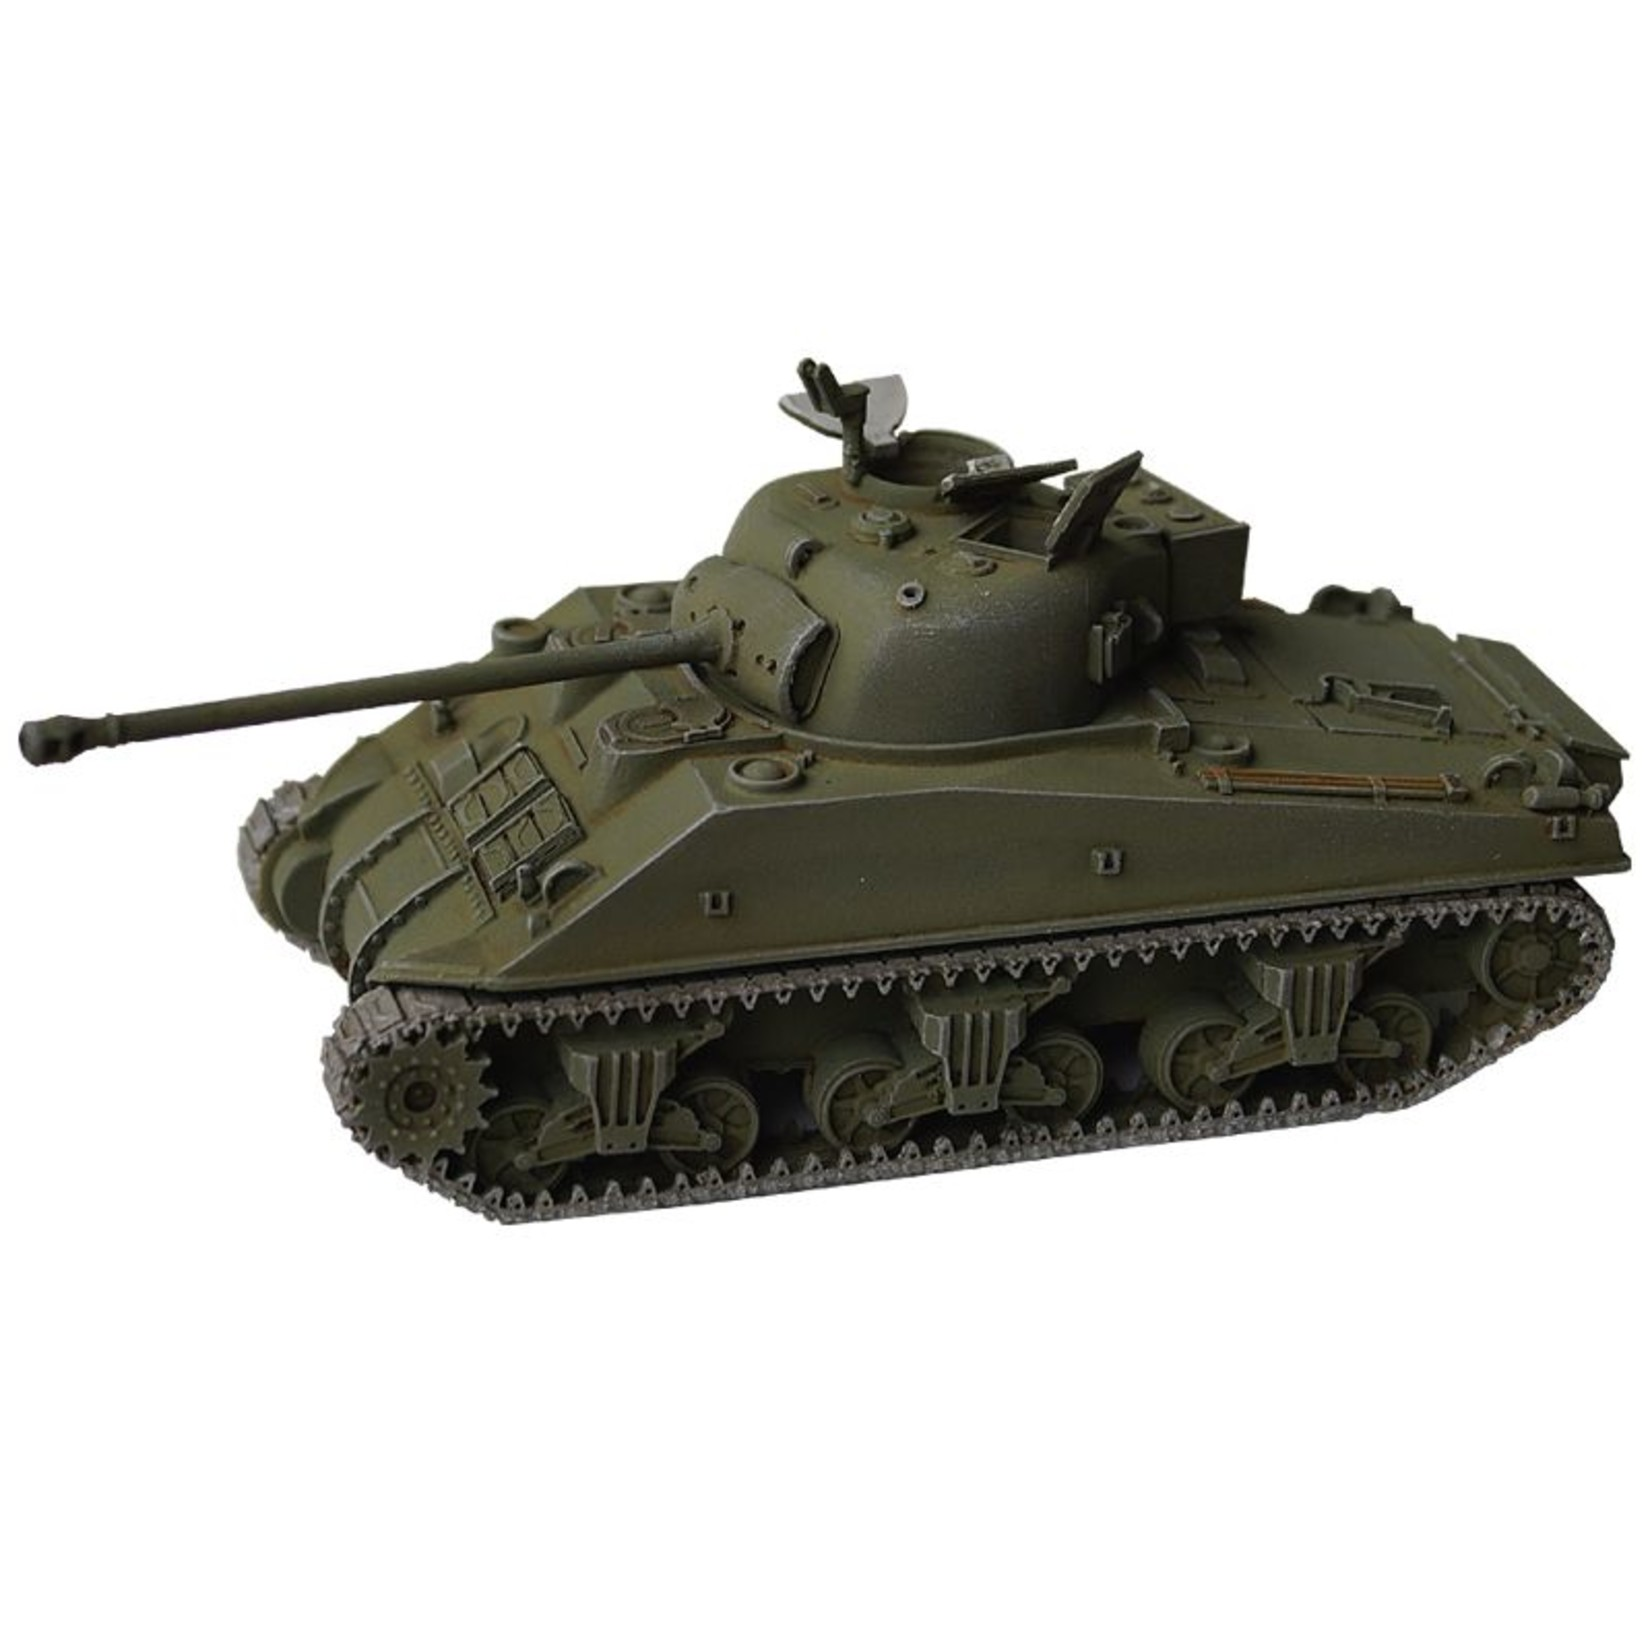 Sherman Vc Firefly tank destroyer